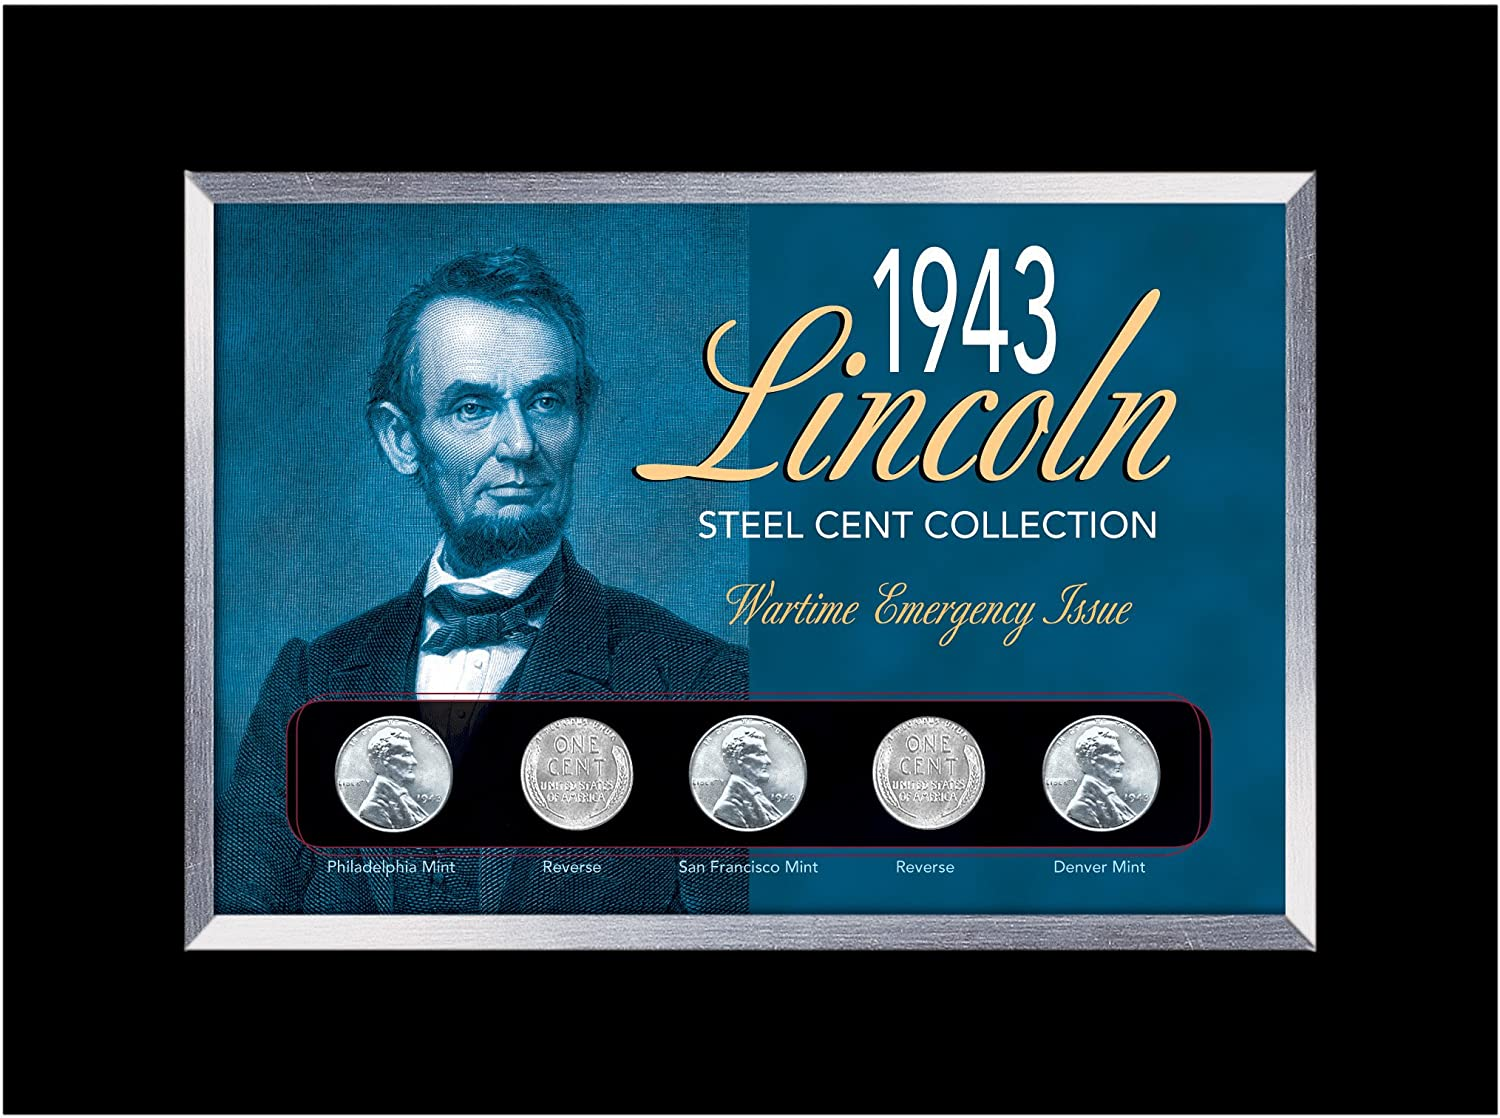 American Coin Treasure WWII 1943 Lincoln Steel Cent /& 1942-45 Wartime Nickel